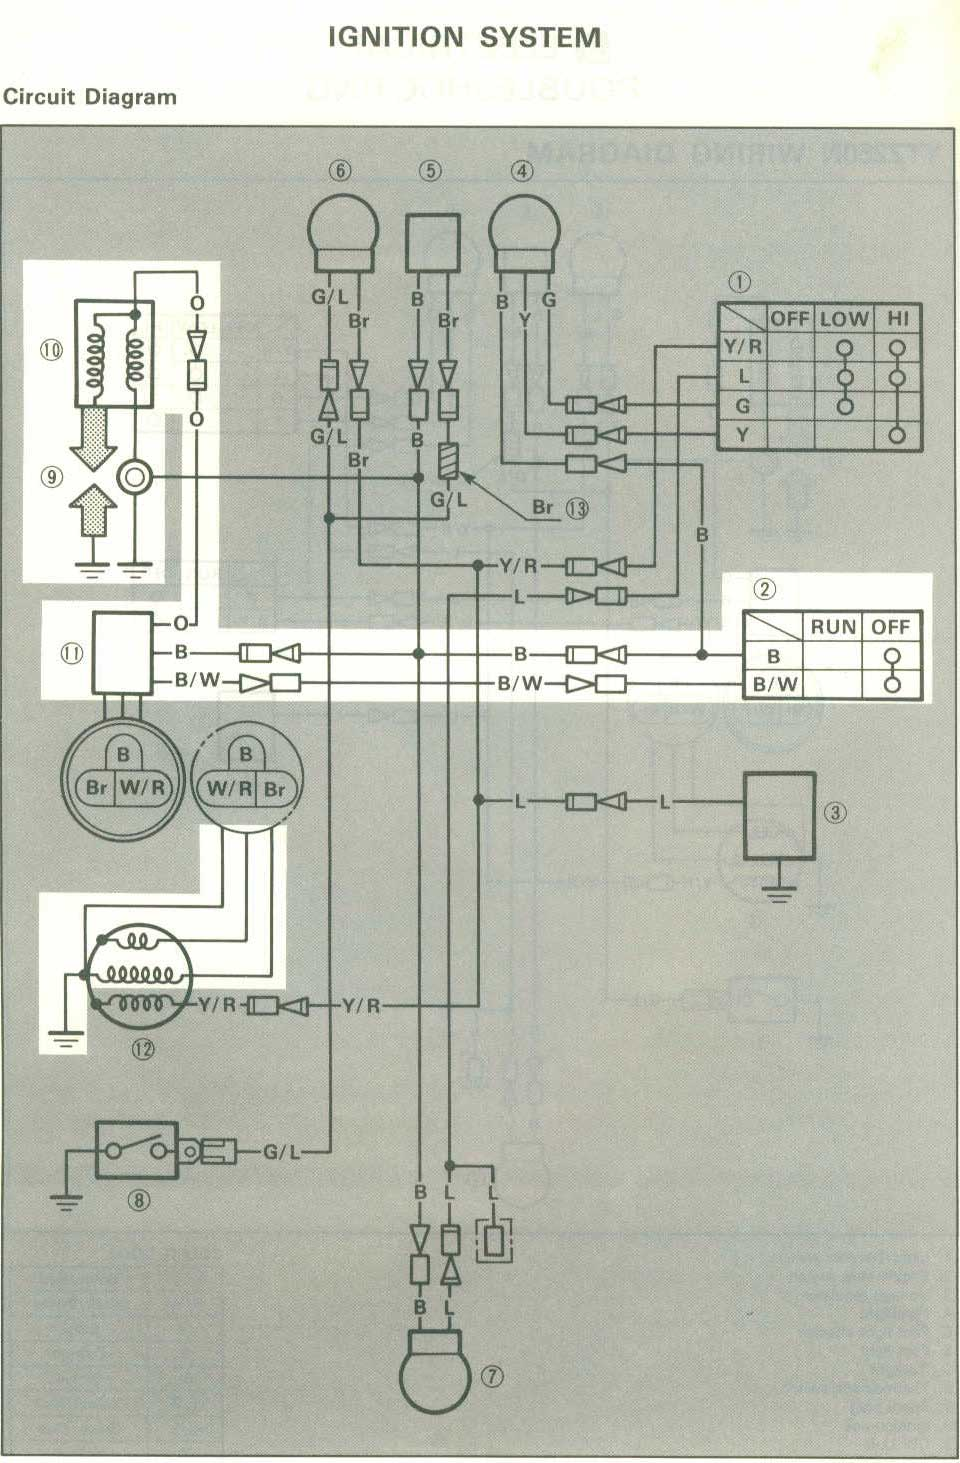 1986 Yamaha Cdi Wiring Diagram - WIRE Center •